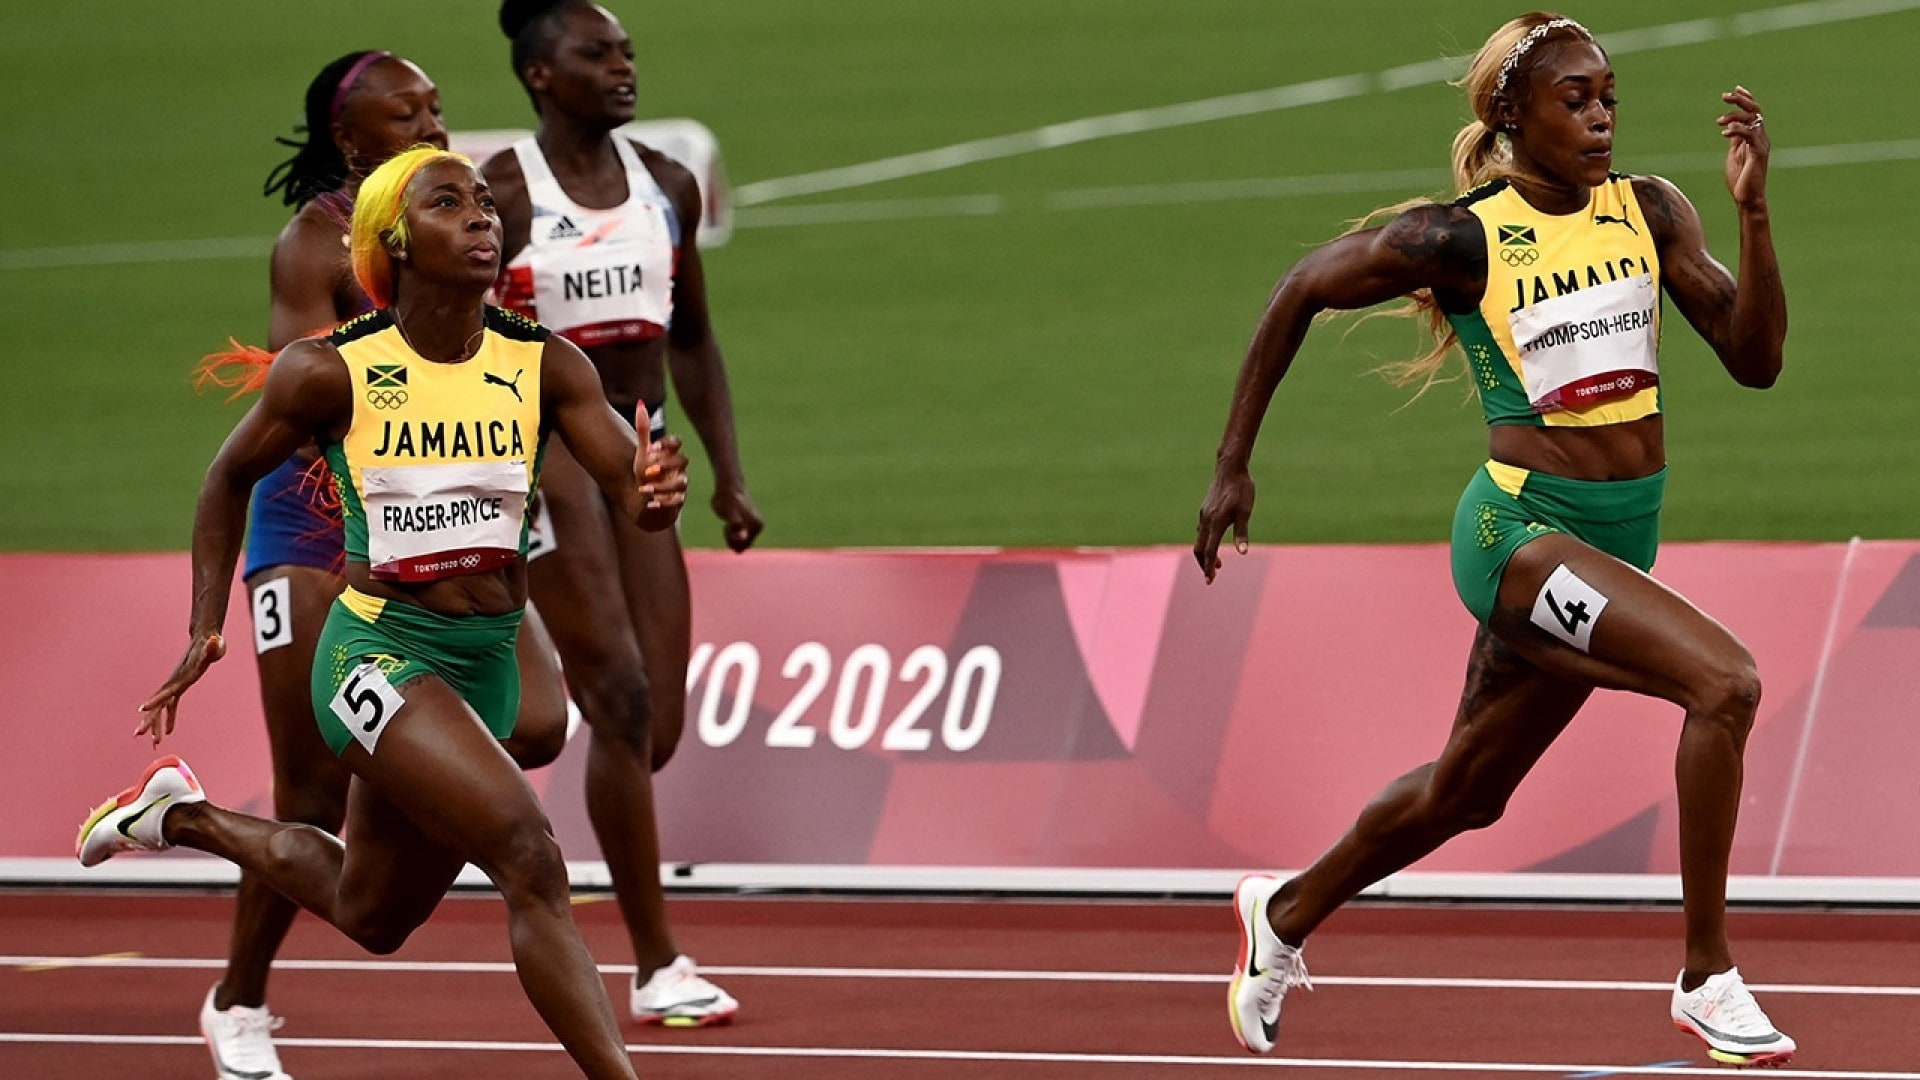 Image for Thompson-Herah becomes first woman to win 100m and 200m gold